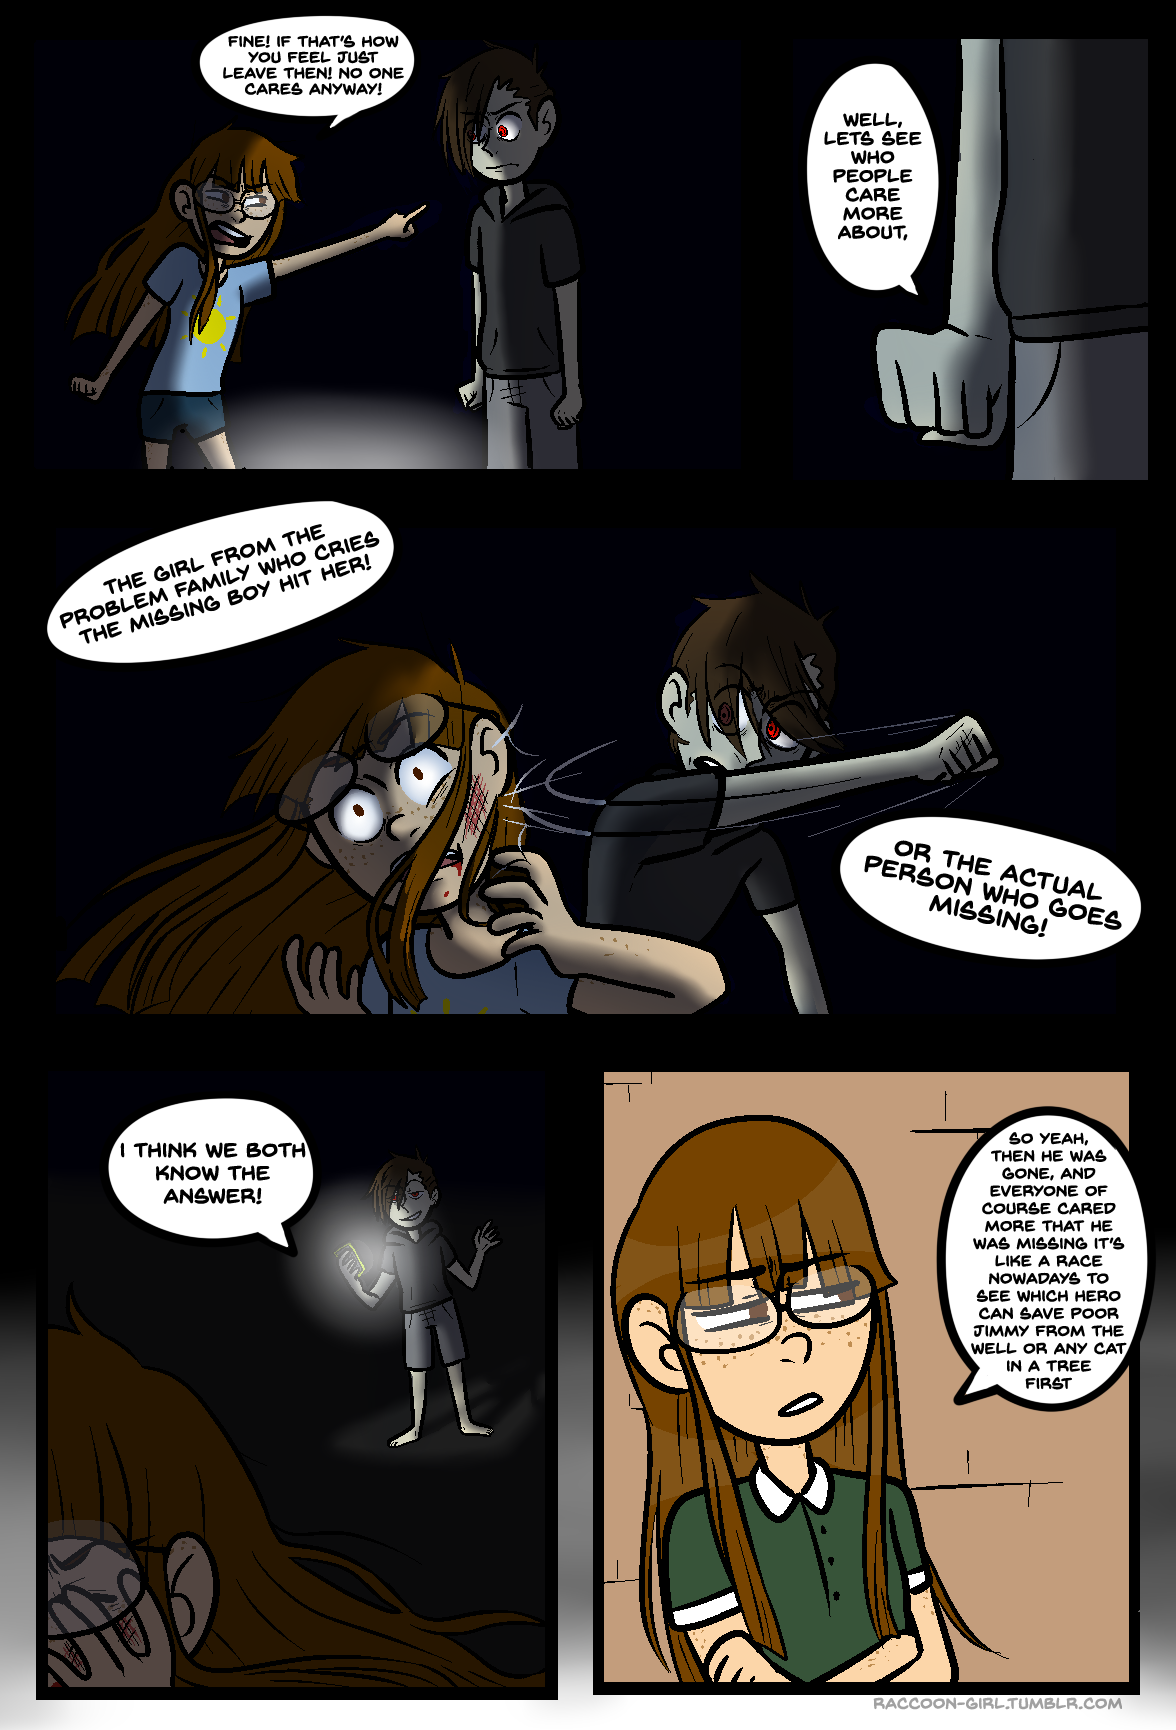 raccoongirl-page42